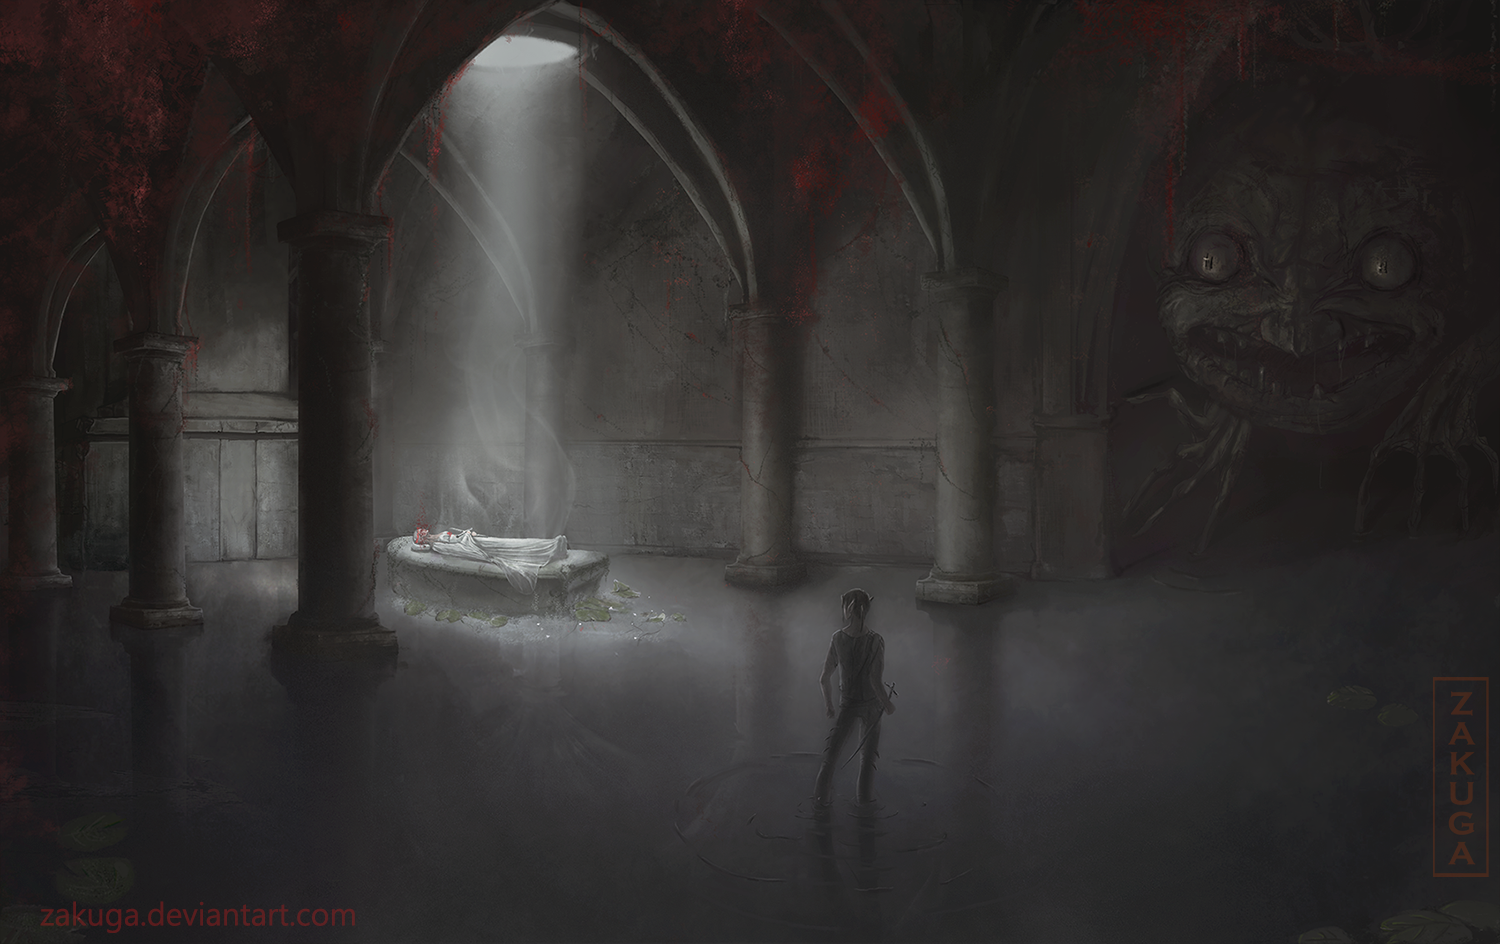 'Go to the Girl' dungeon horror concept